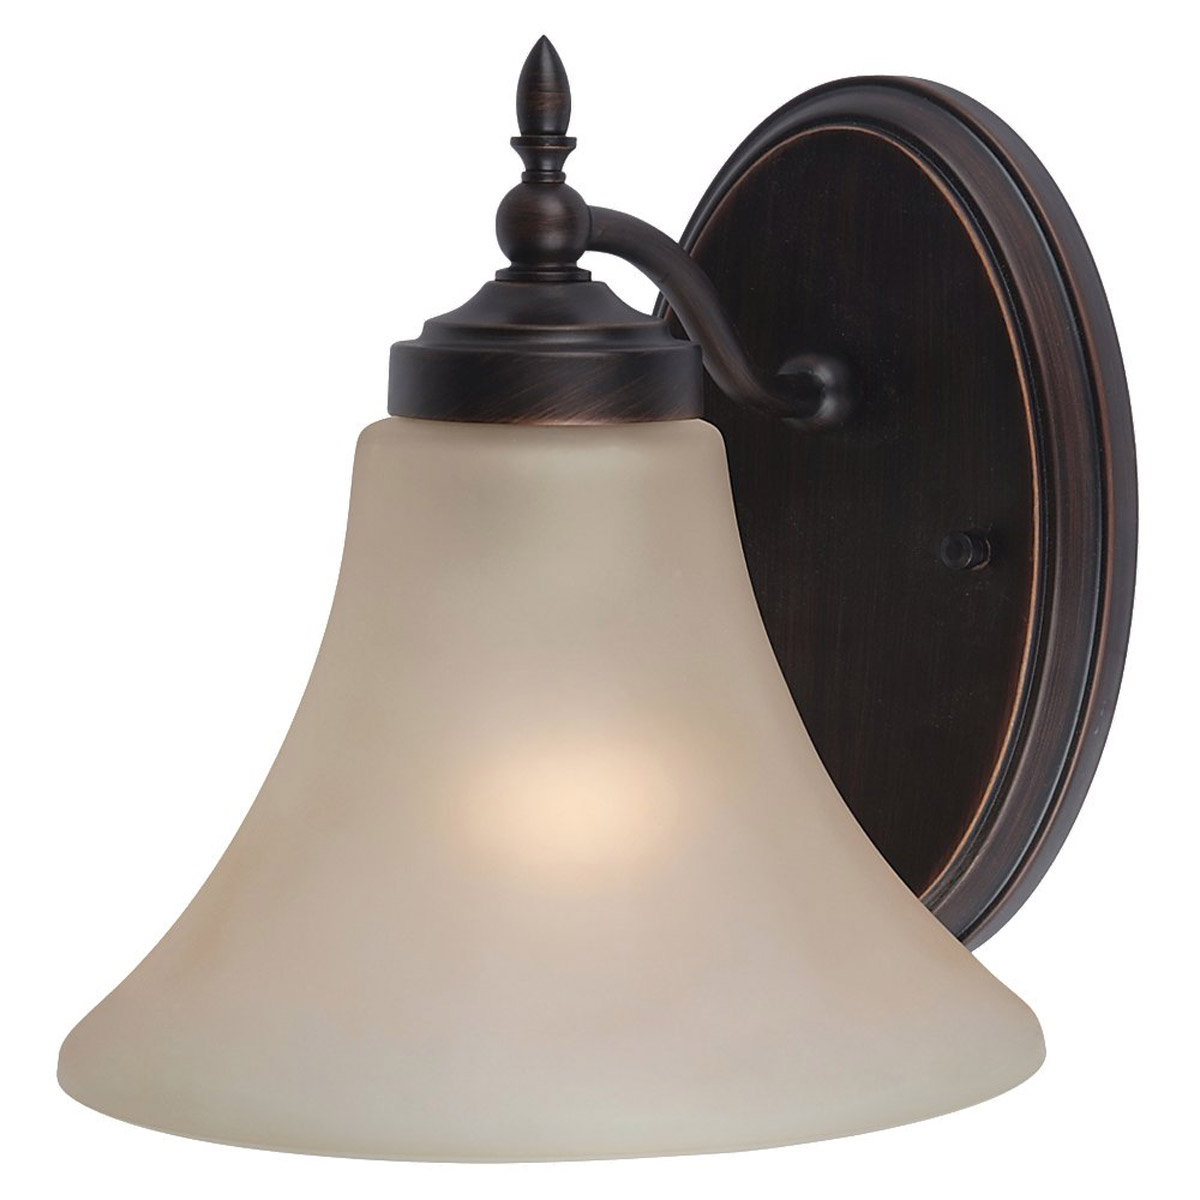 Sea Gull 41180BLE-710 Montreal 1 Light 8 inch Burnt Sienna Bath Vanity Wall Light in Cafe Tint Glass, Fluorescent photo